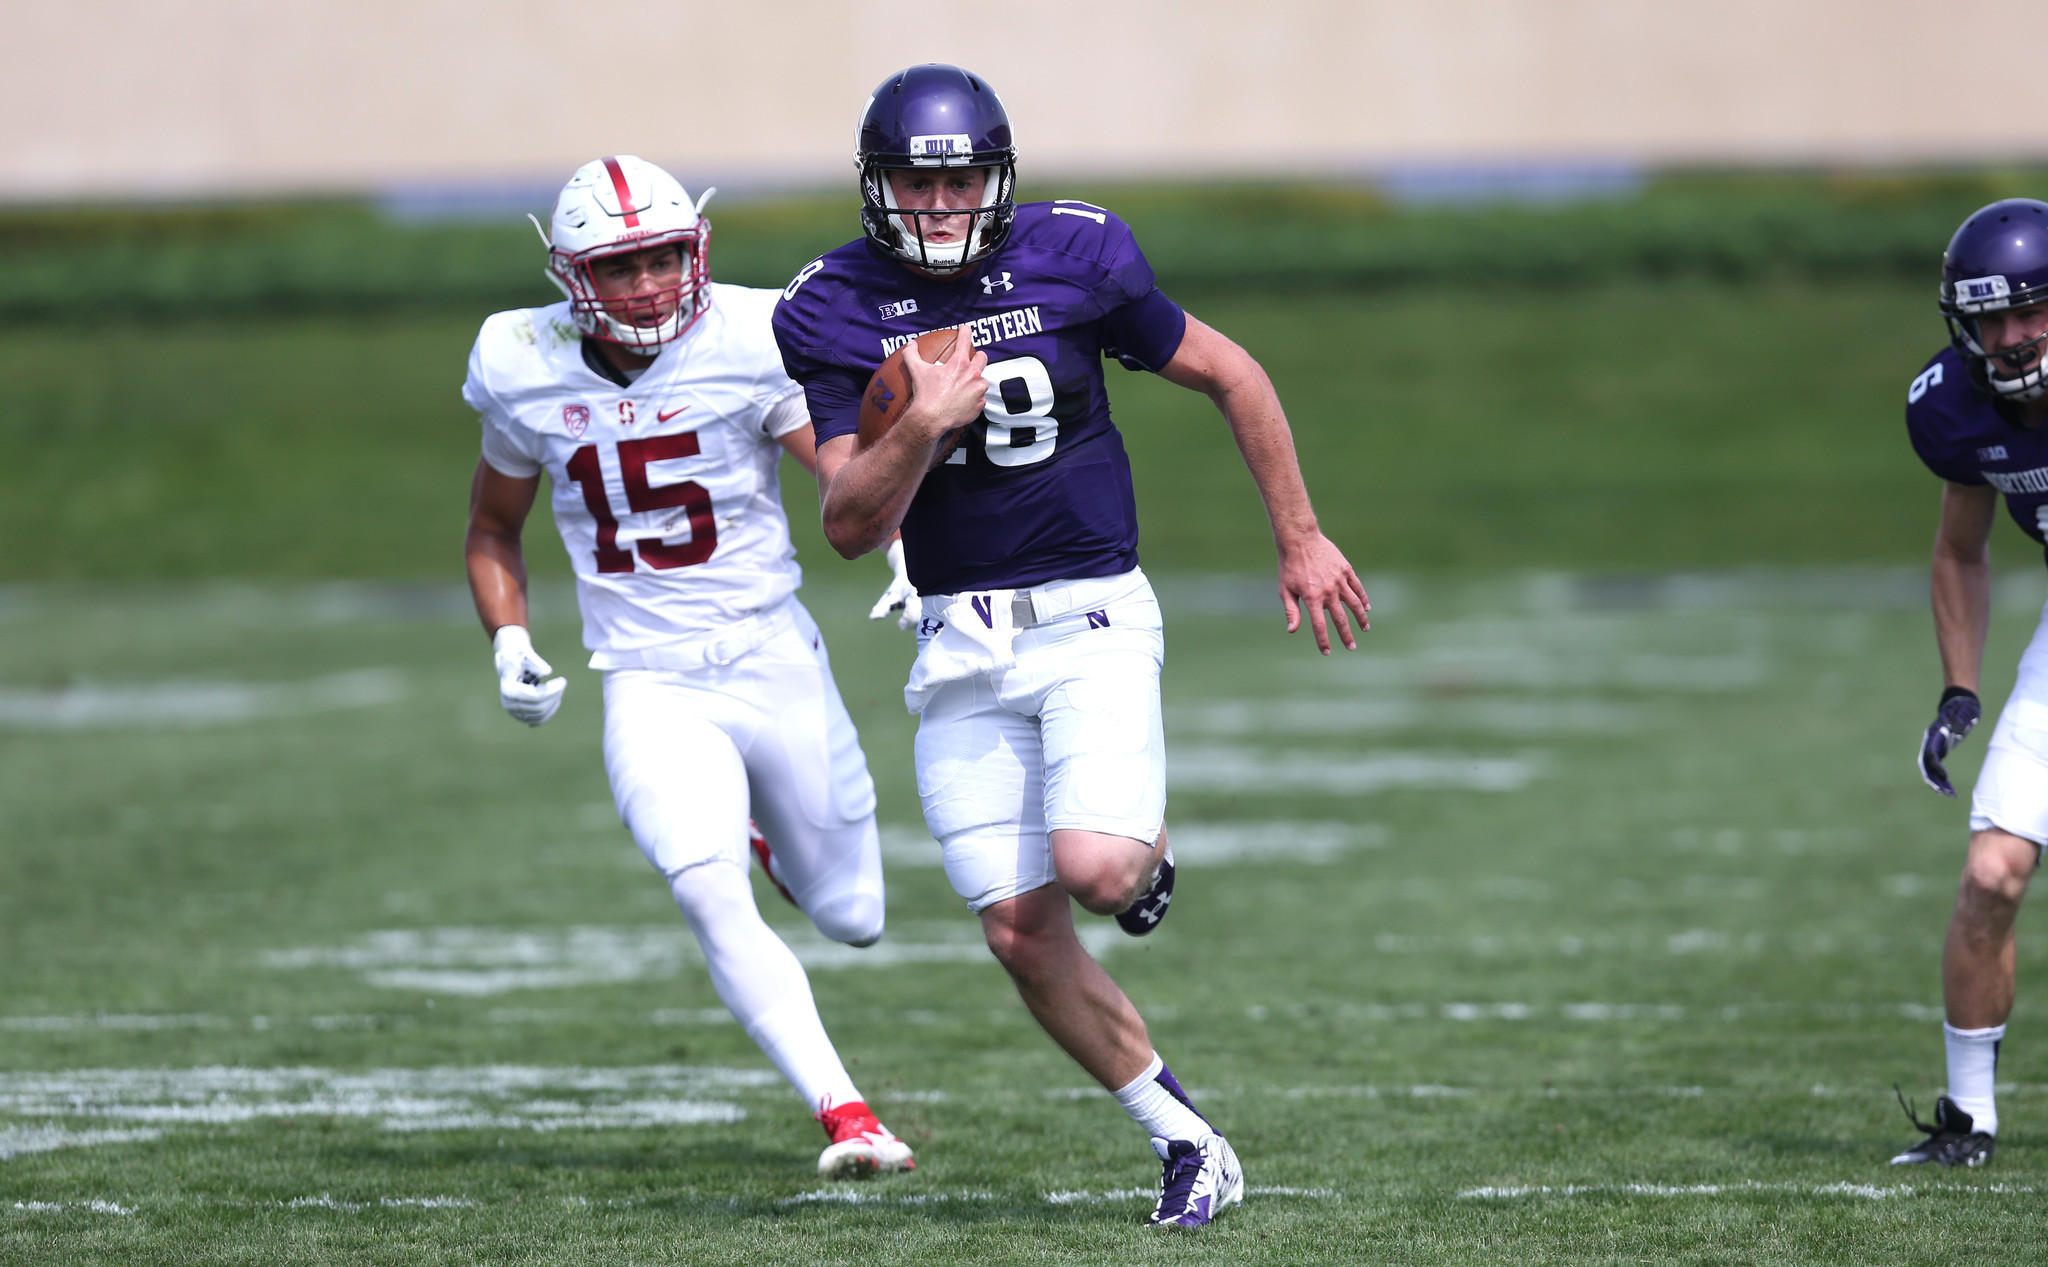 ct-northwestern-stanford-spt-0906-20150905